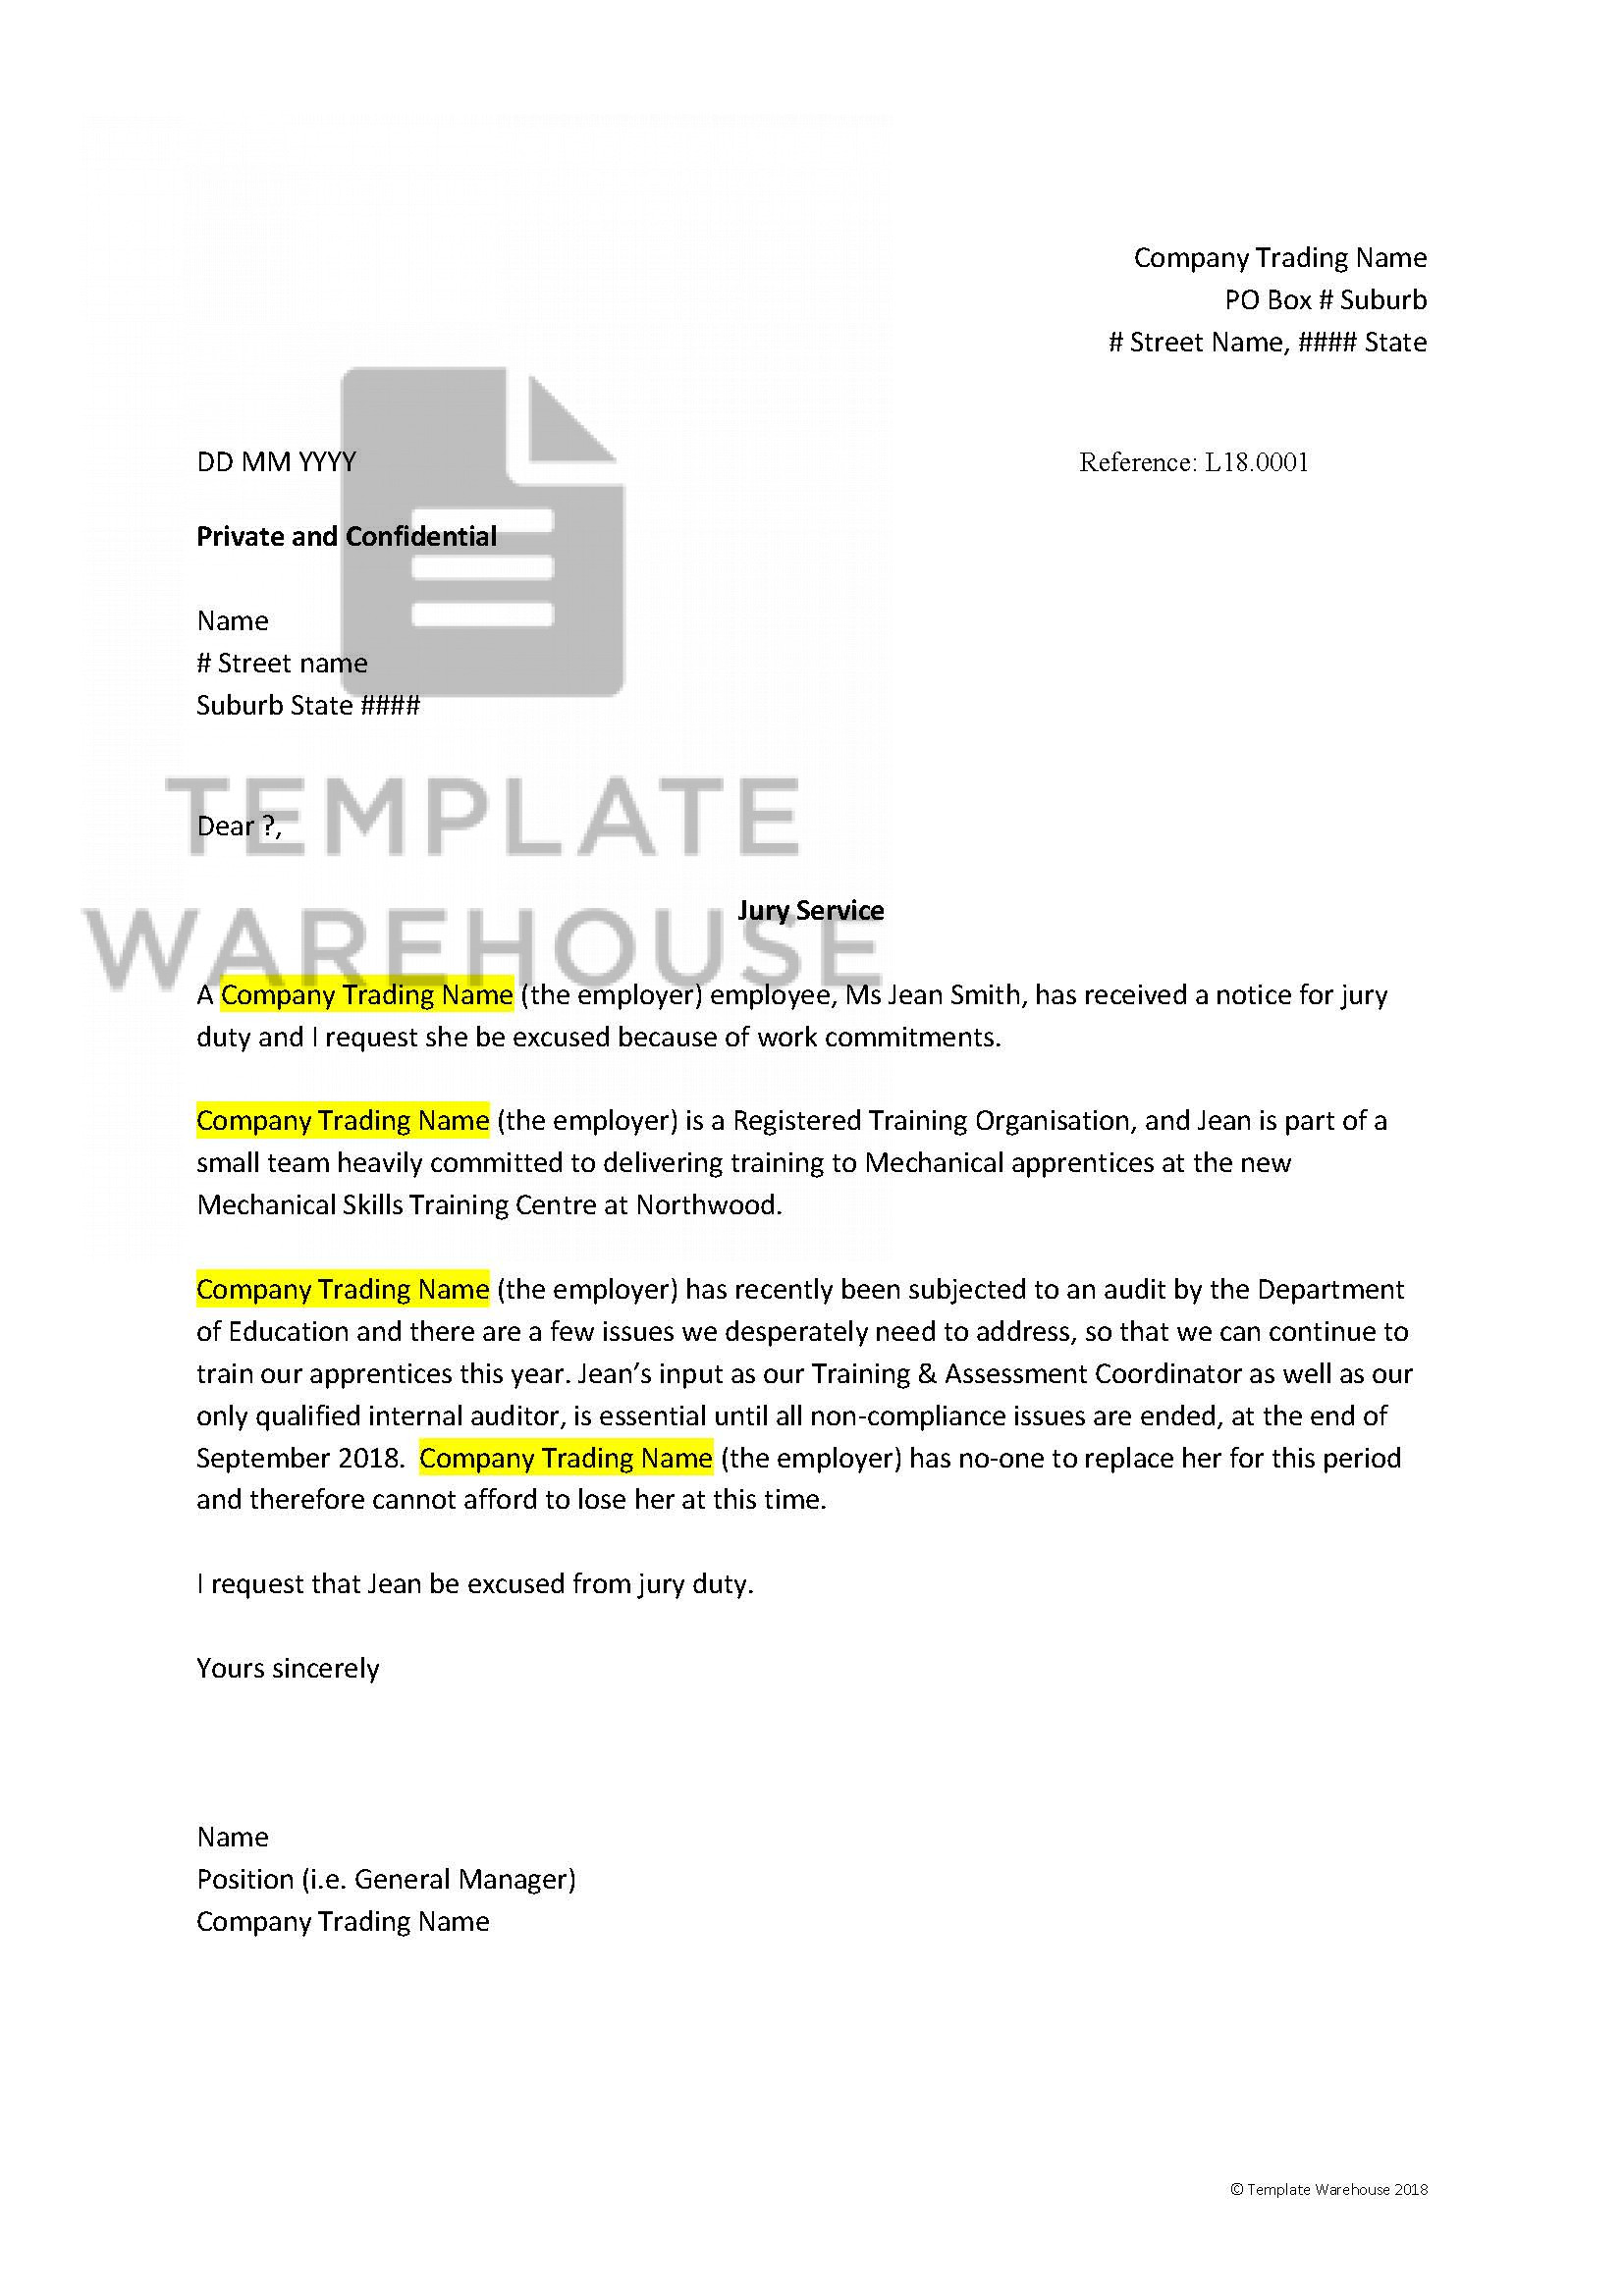 Jury Duty Student Excuse Letter Sample from www.templatewarehouse.com.au